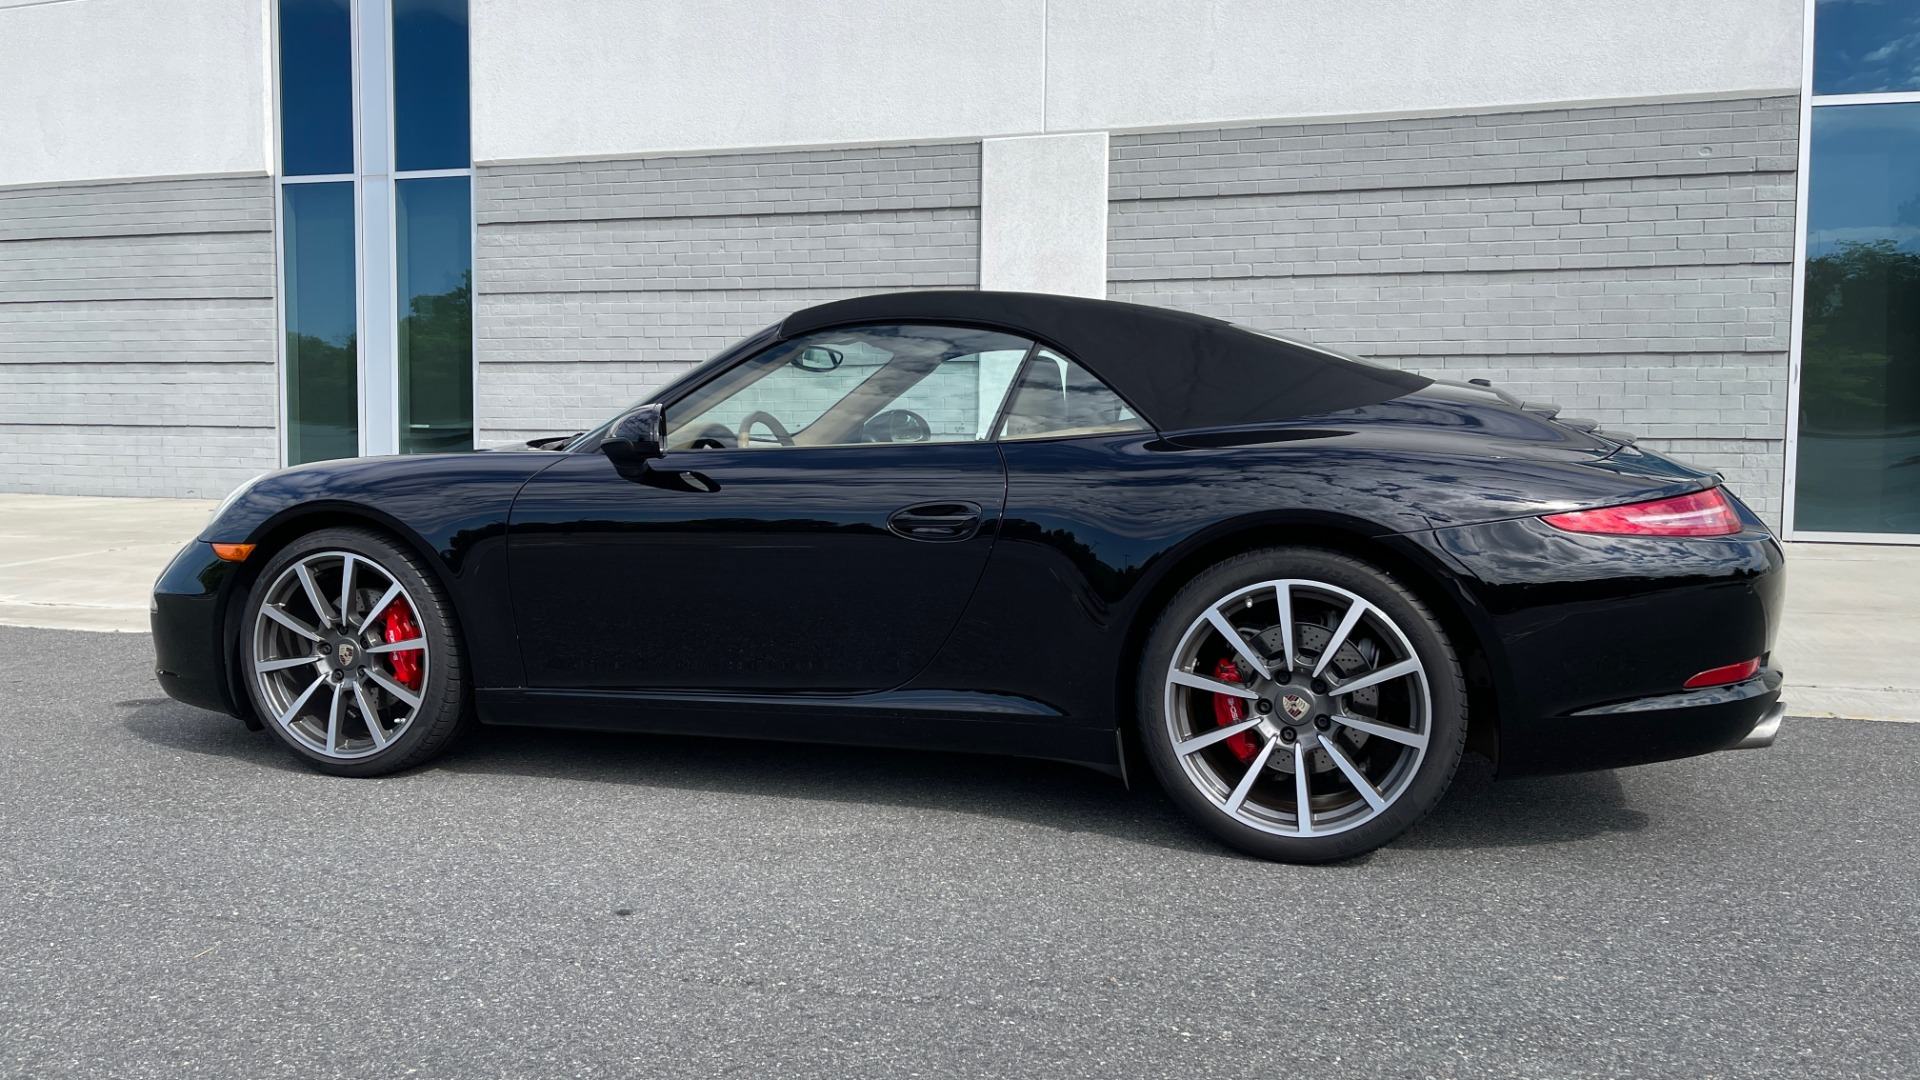 Used 2013 Porsche 911 CARRERA CABRIOLET / PDK / NAV / BOSE / HTD STS / PDLS for sale Sold at Formula Imports in Charlotte NC 28227 6